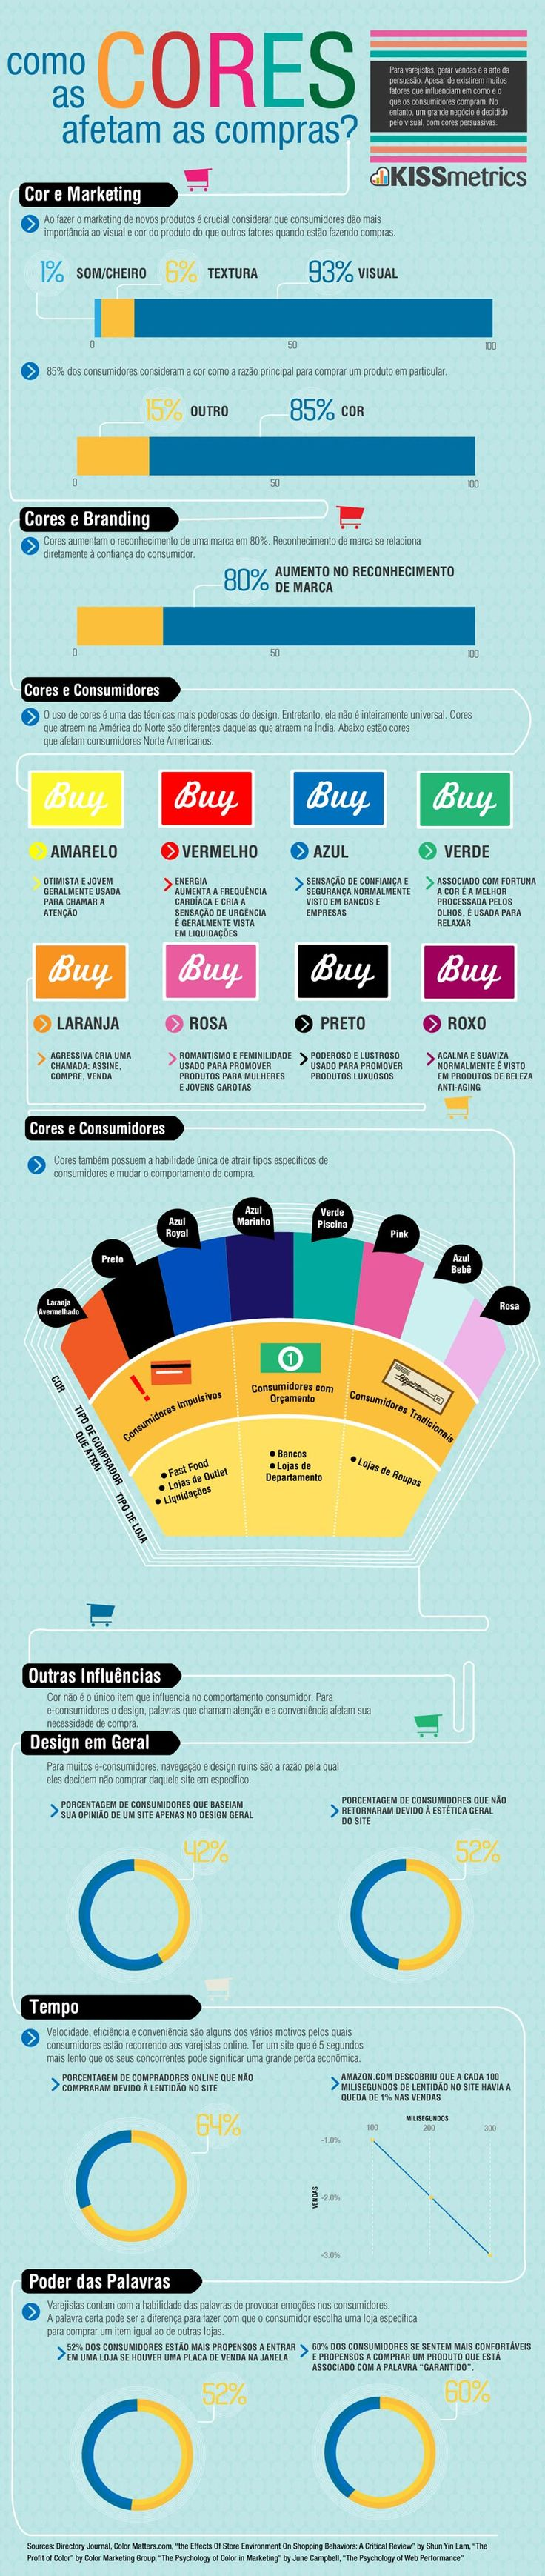 Infográfico - Como as cores afetam as compras?